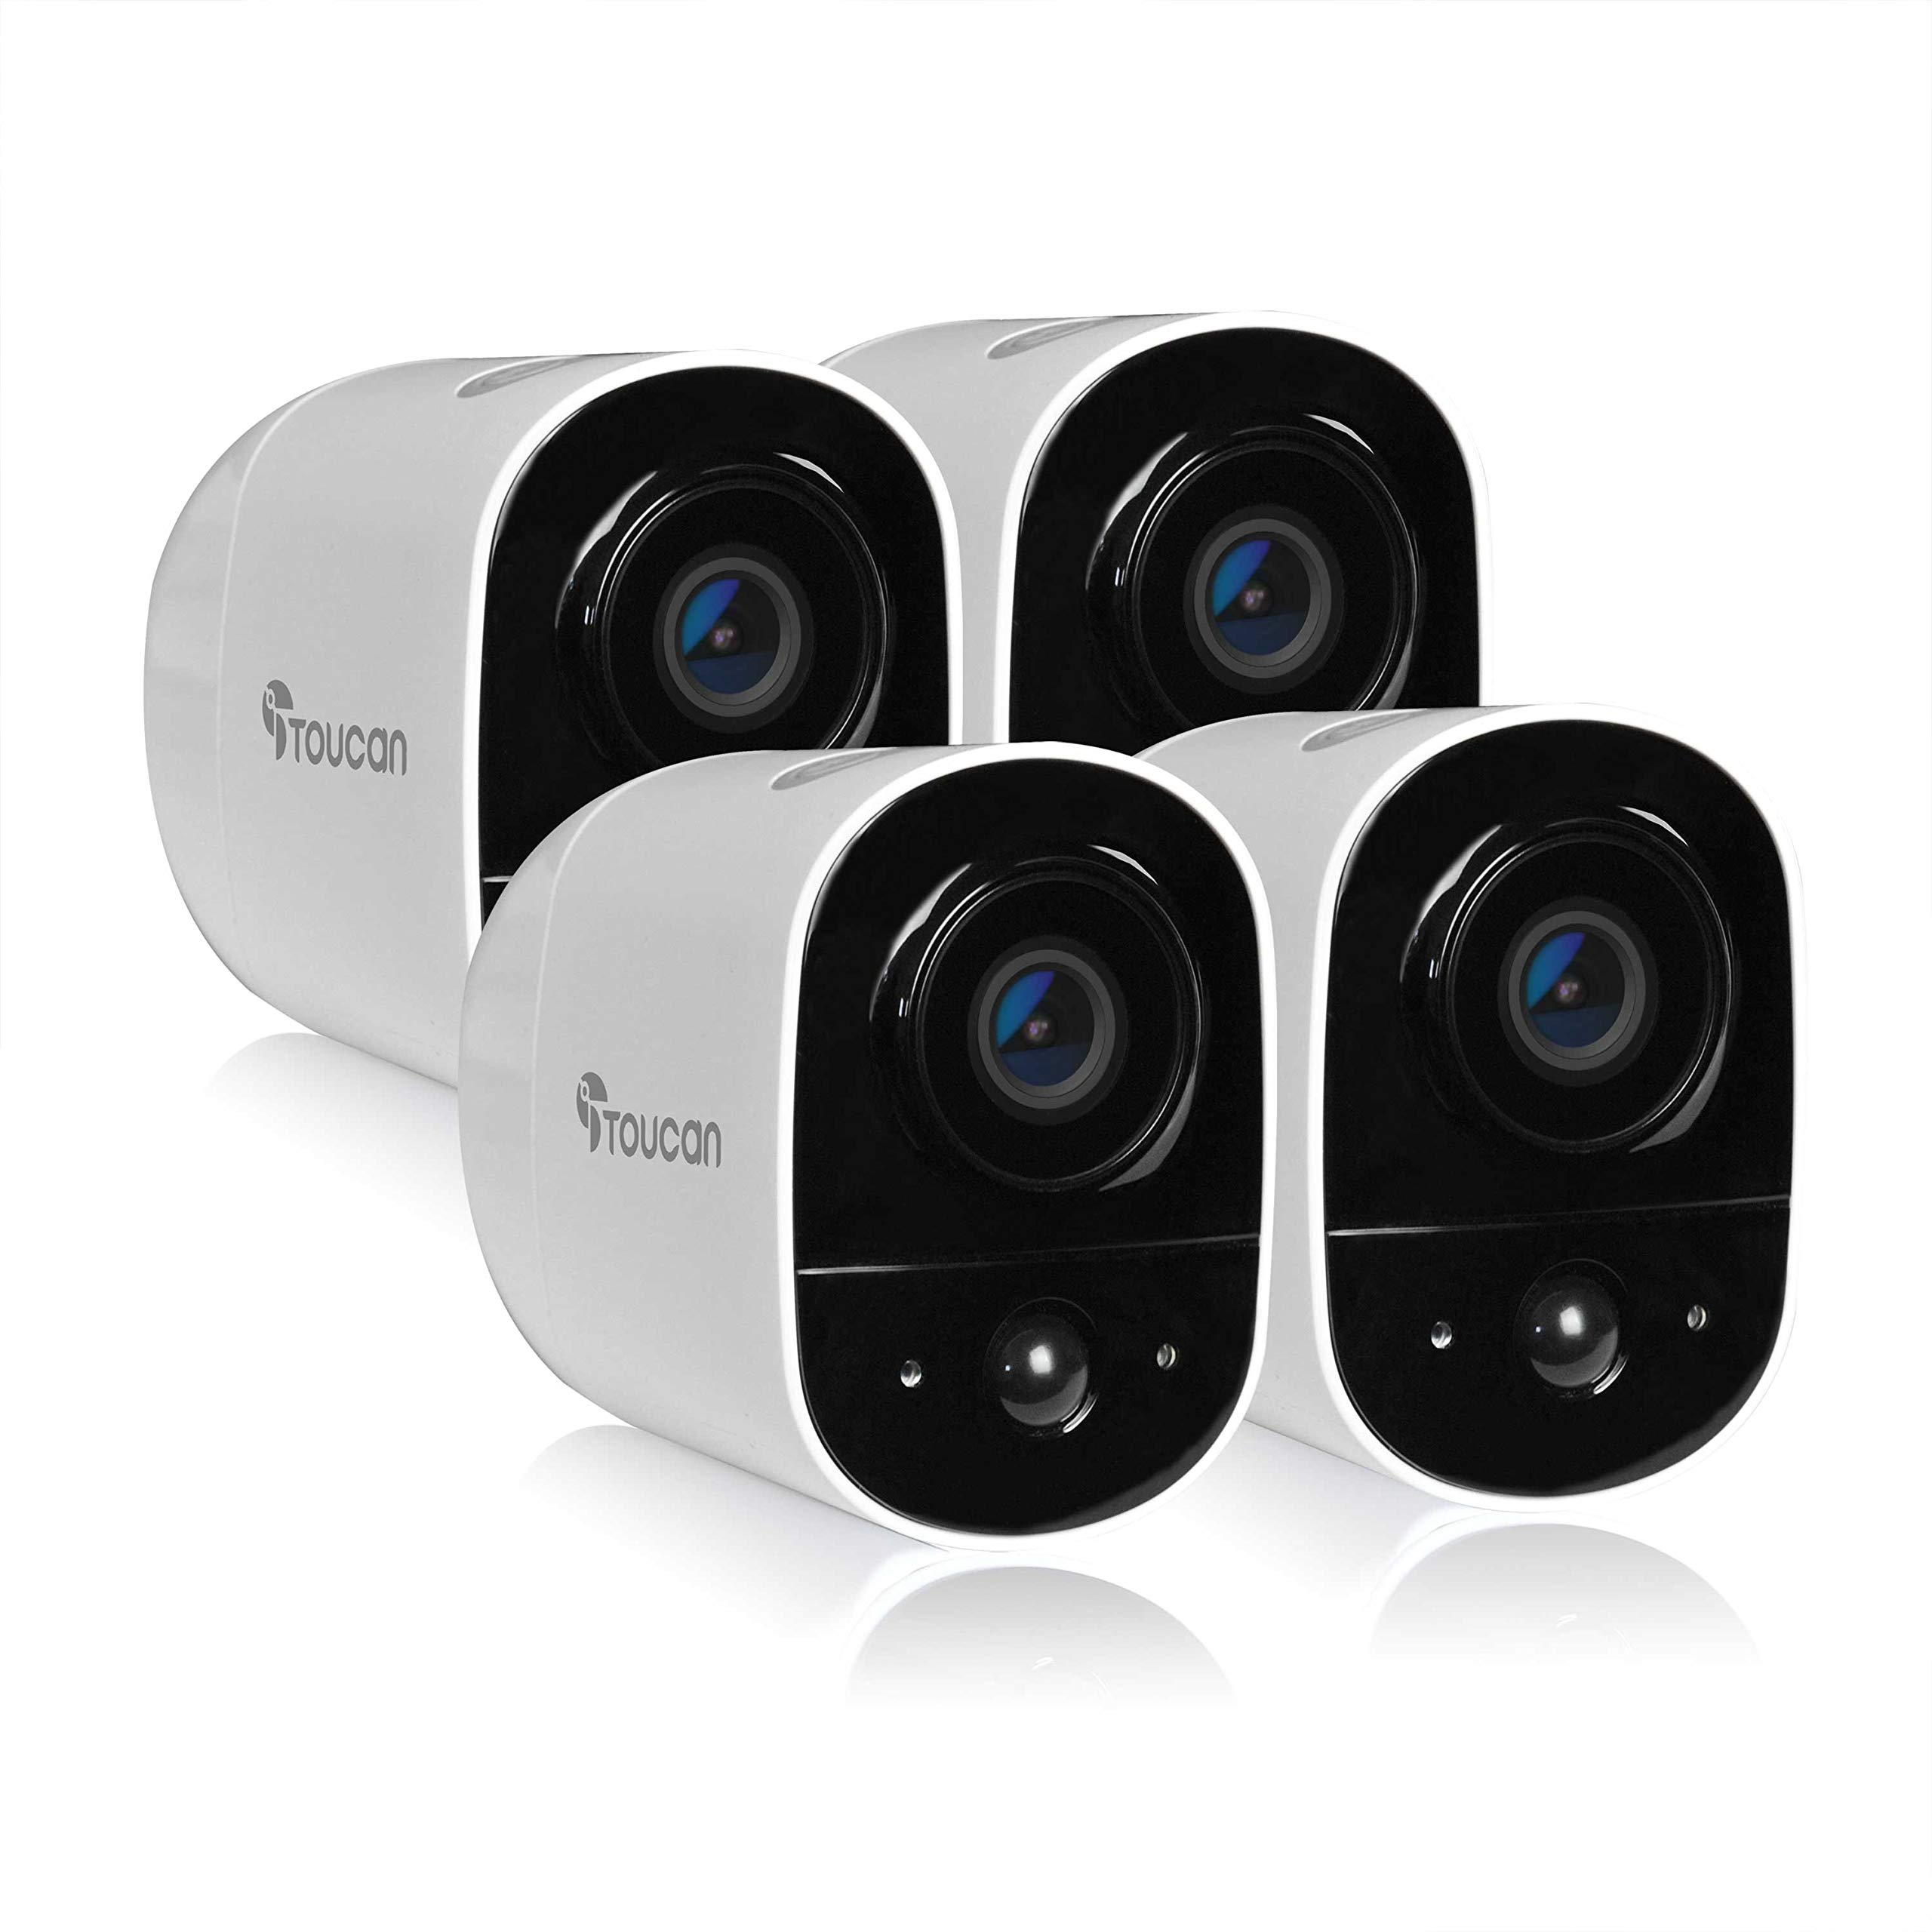 Toucan Rechargeable Battery-Powered Wireless Outdoor Security Camera with 1080P FHD Video, Smart Home, Motion Detection, Weatherproof, Night Vision, 2-Way Audio, 2.4Ghz WiFi, Works with Alexa (4 Pack)